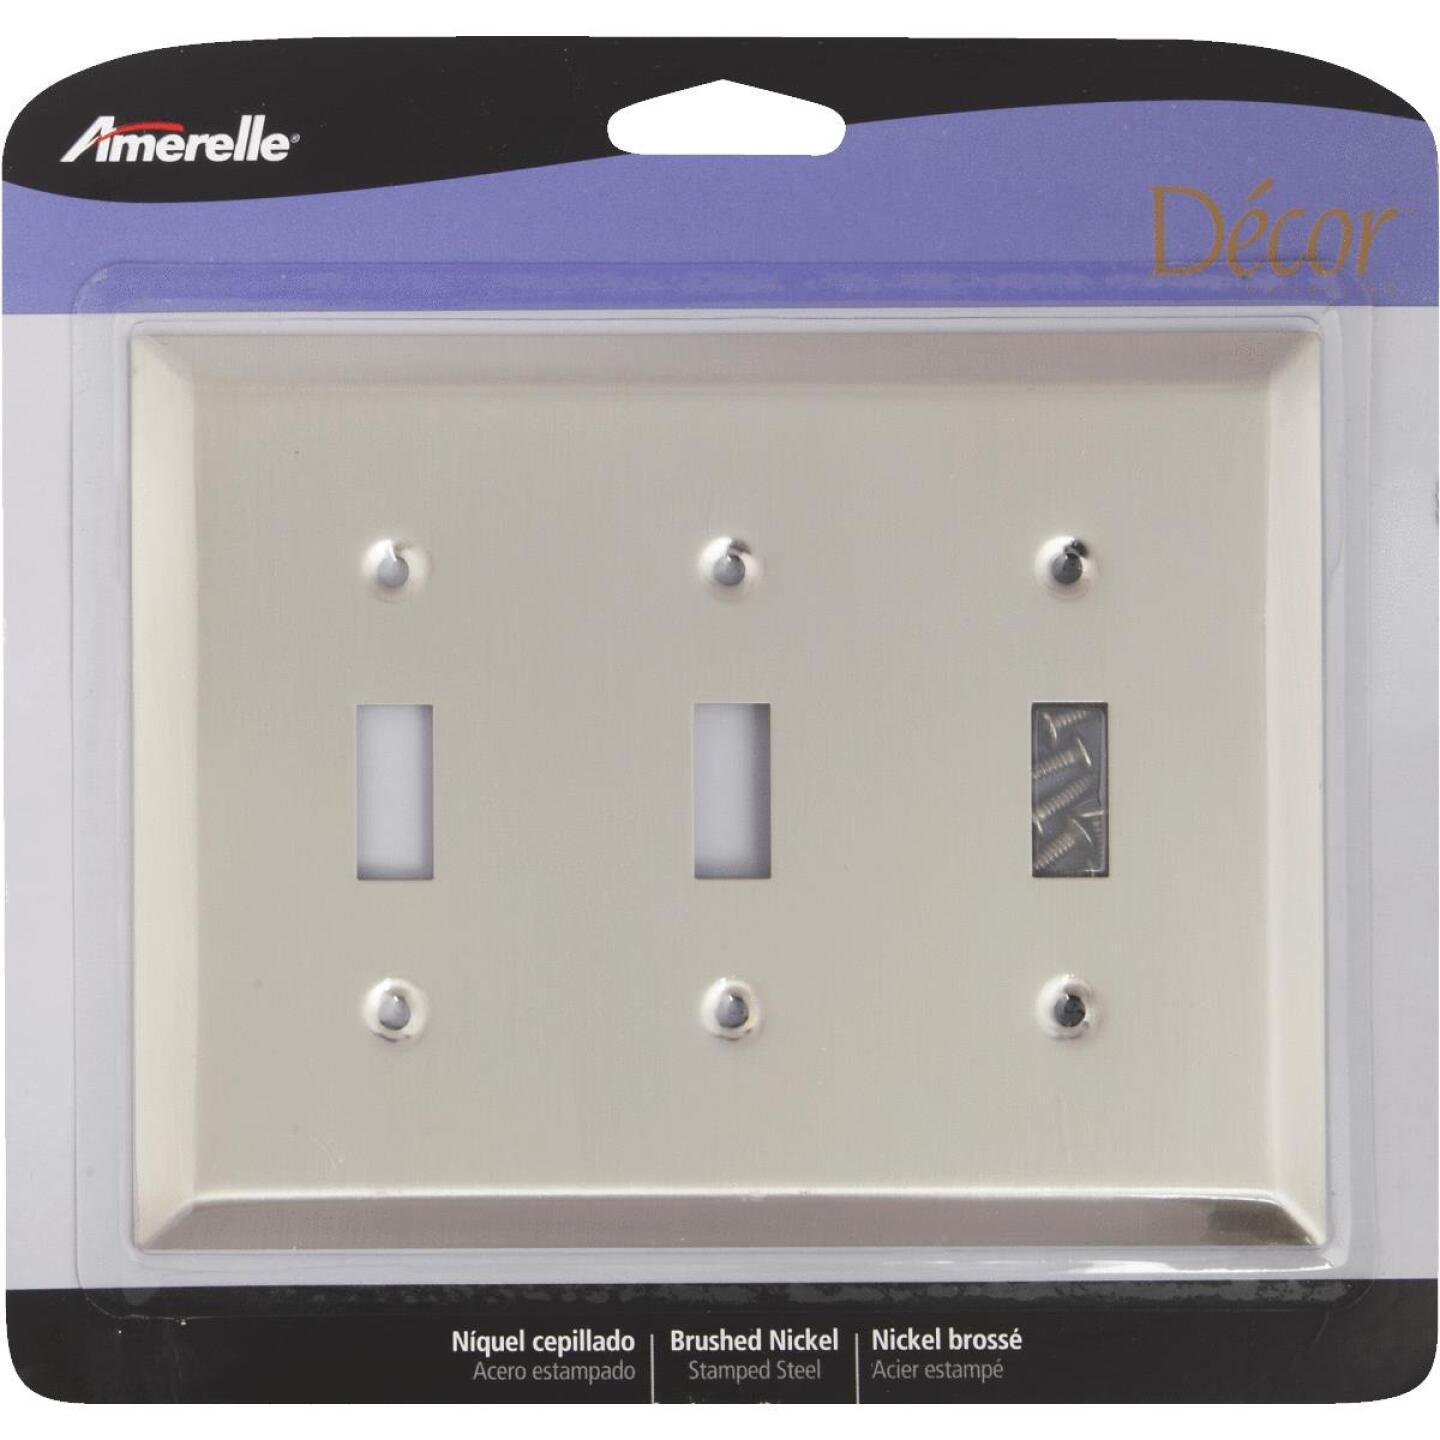 Amerelle 3-Gang Stamped Steel Toggle Switch Wall Plate, Brushed Nickel Image 2